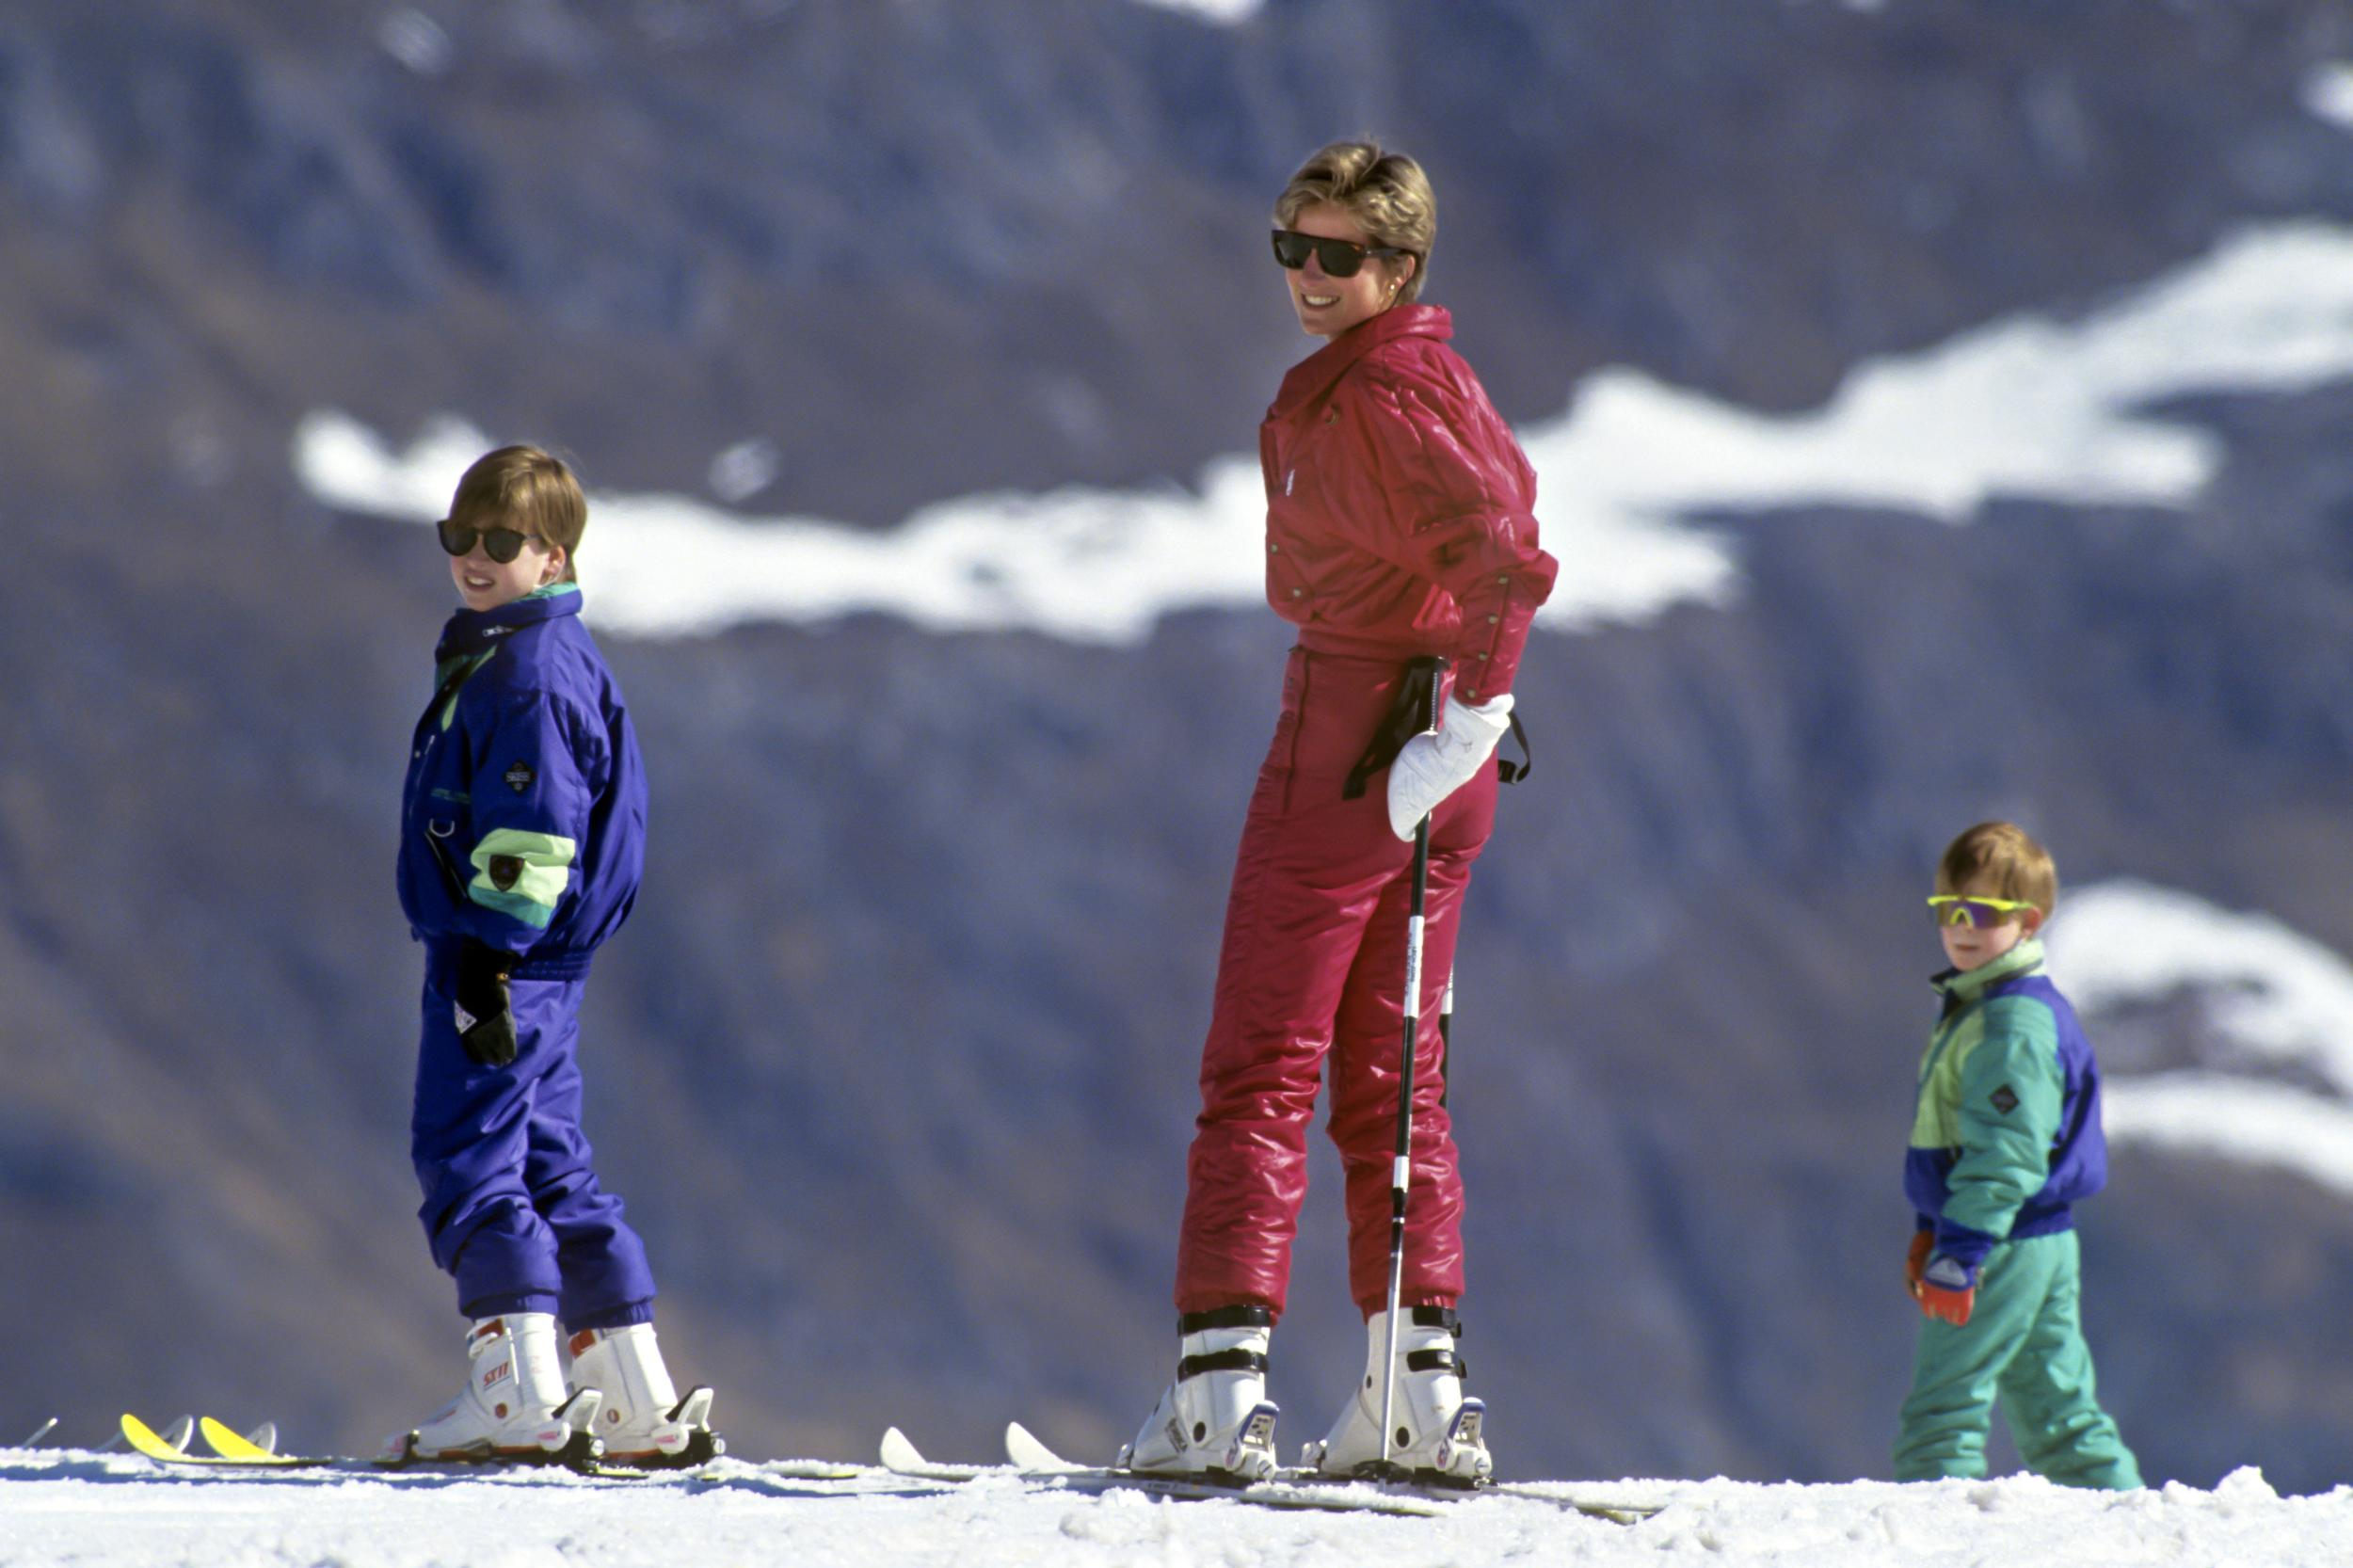 Diana Princess Of Wales, Prince William, And Prince Harry, Skiing In Lech, Austria. (Photo by Julian Parker/UK Press via Getty Images)